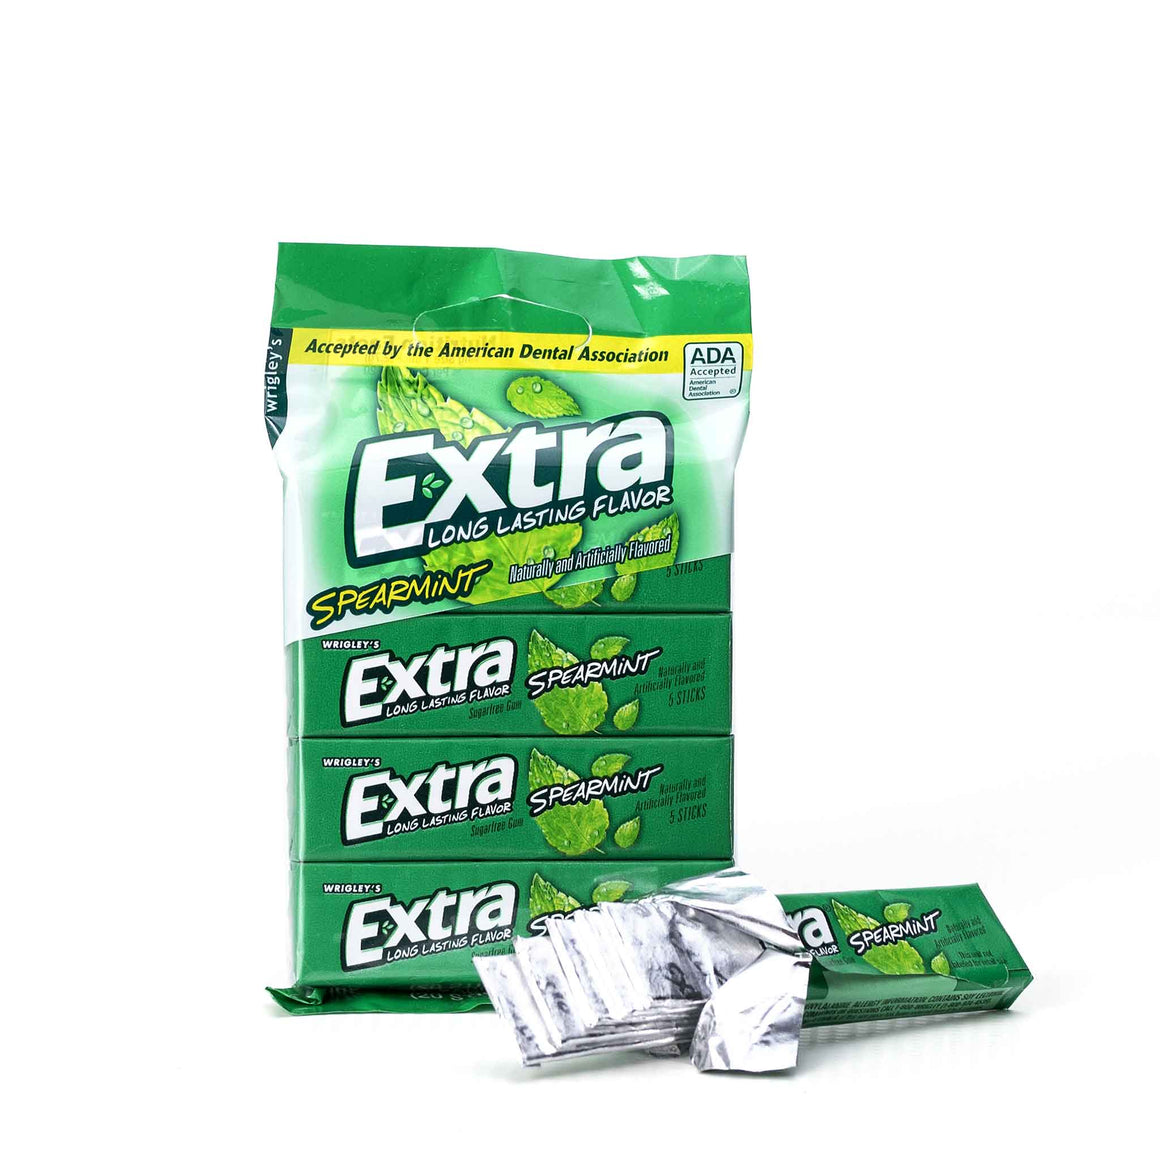 Spearmint Chewing Gum product image - included with Dr. Don's Care Packages College Student Care Package.